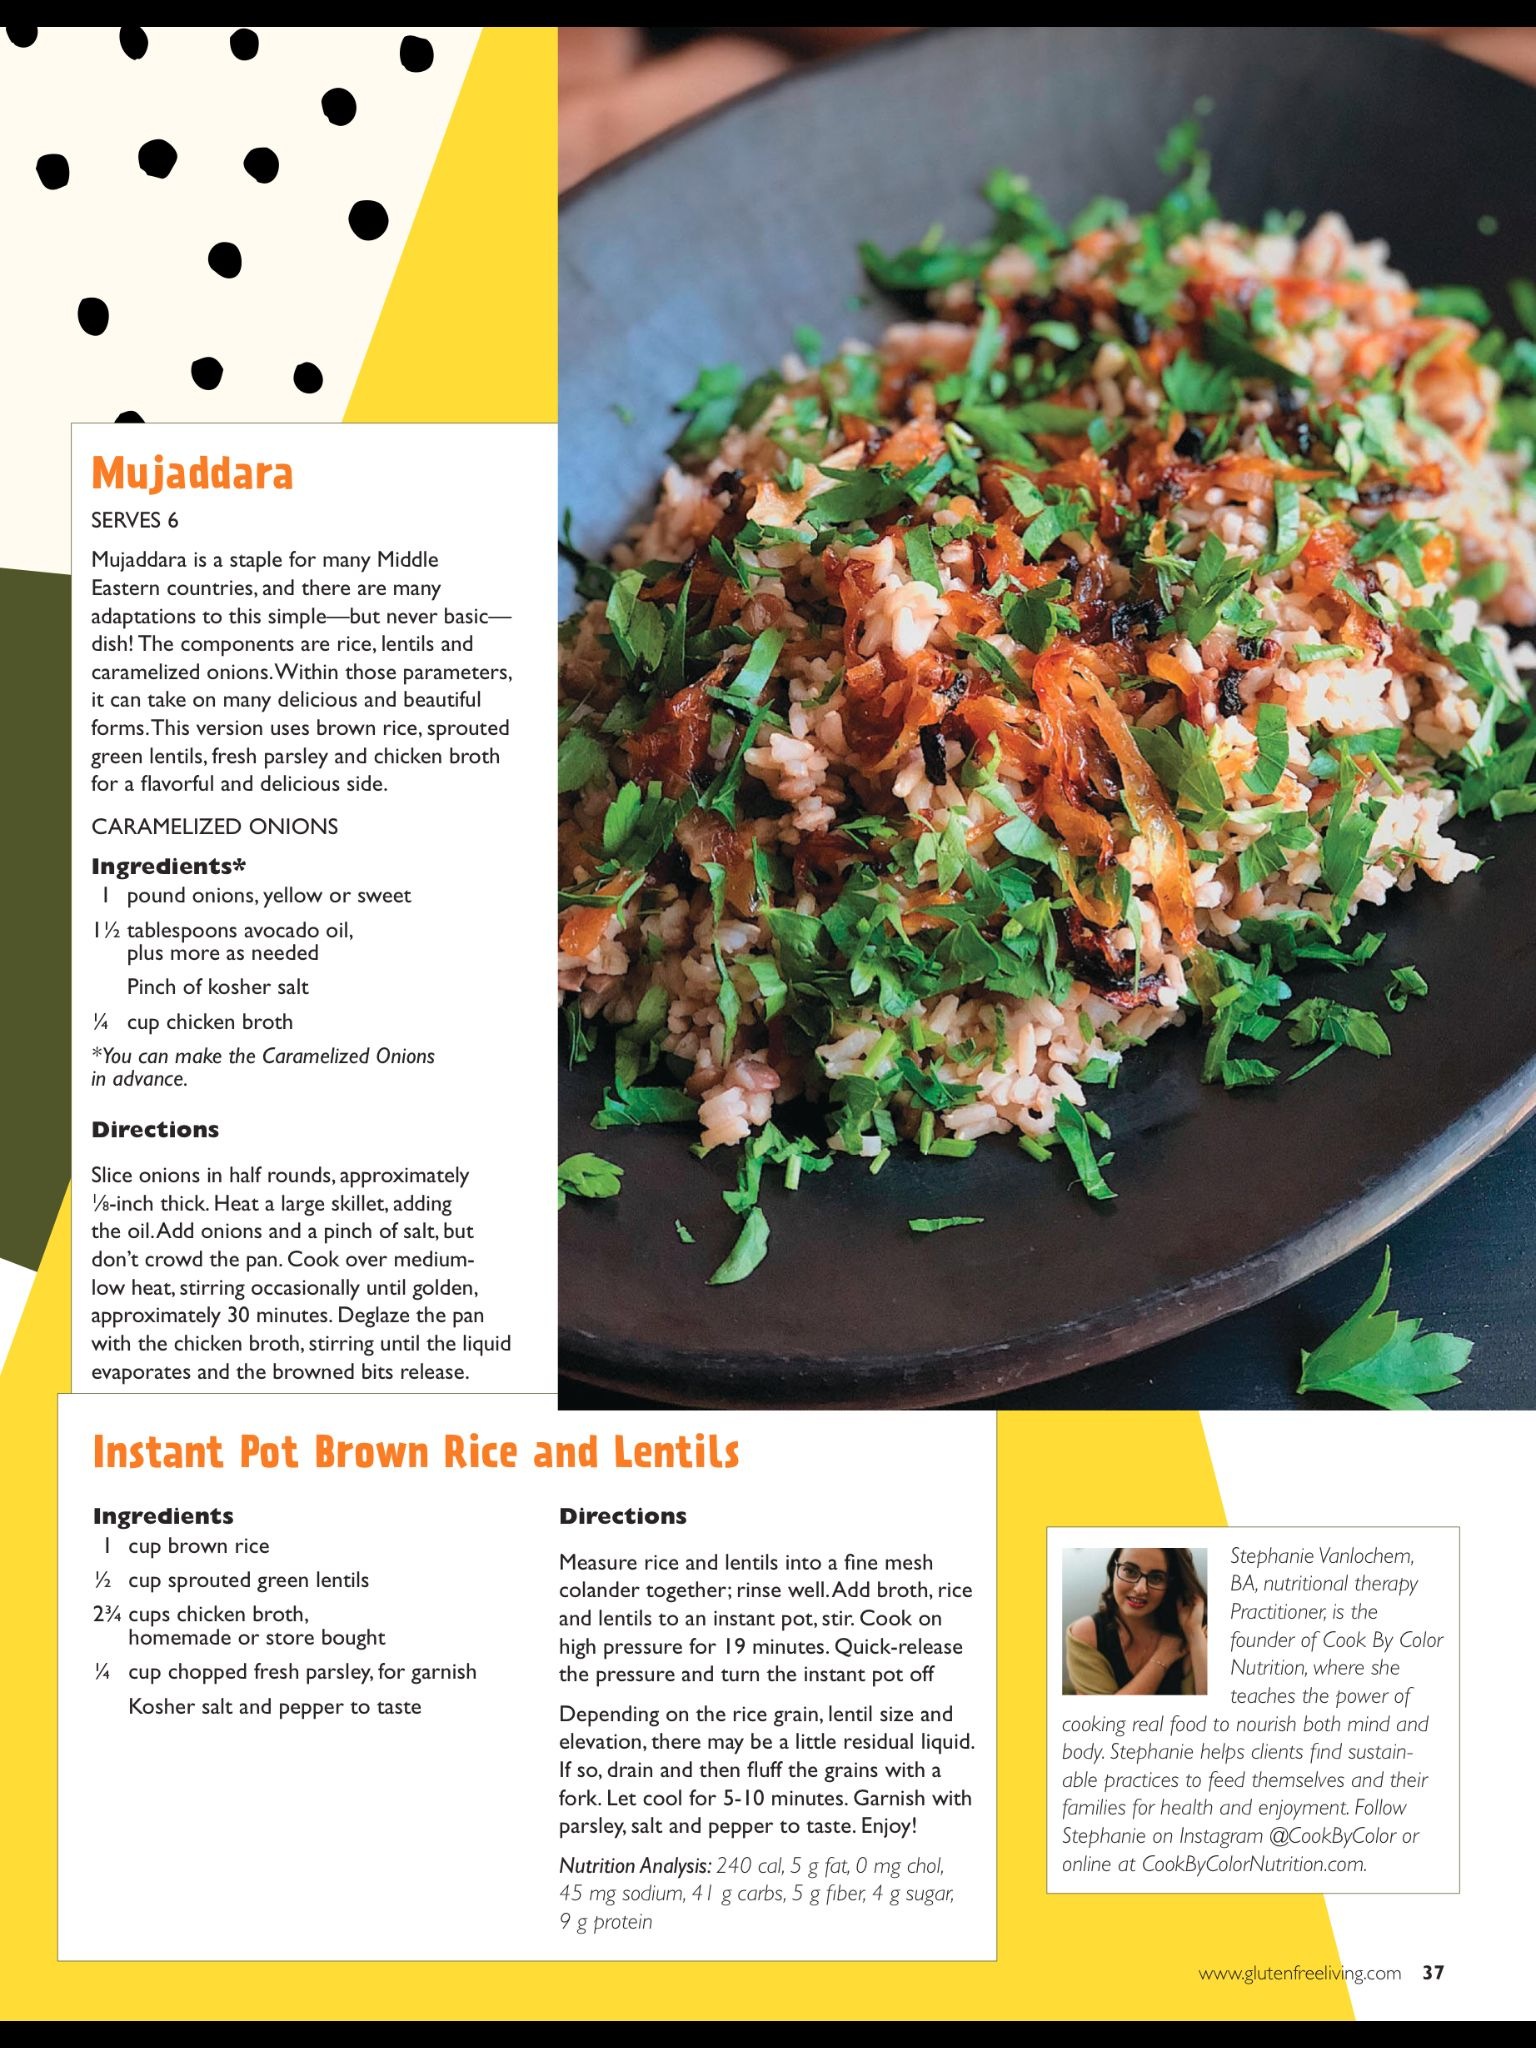 Cook By Color From Gluten Free Living Nov Dec 2018 Read It On The Texture App Unlimited Access To 200 To Gluten Free Living Gluten Free Caramelized Onions